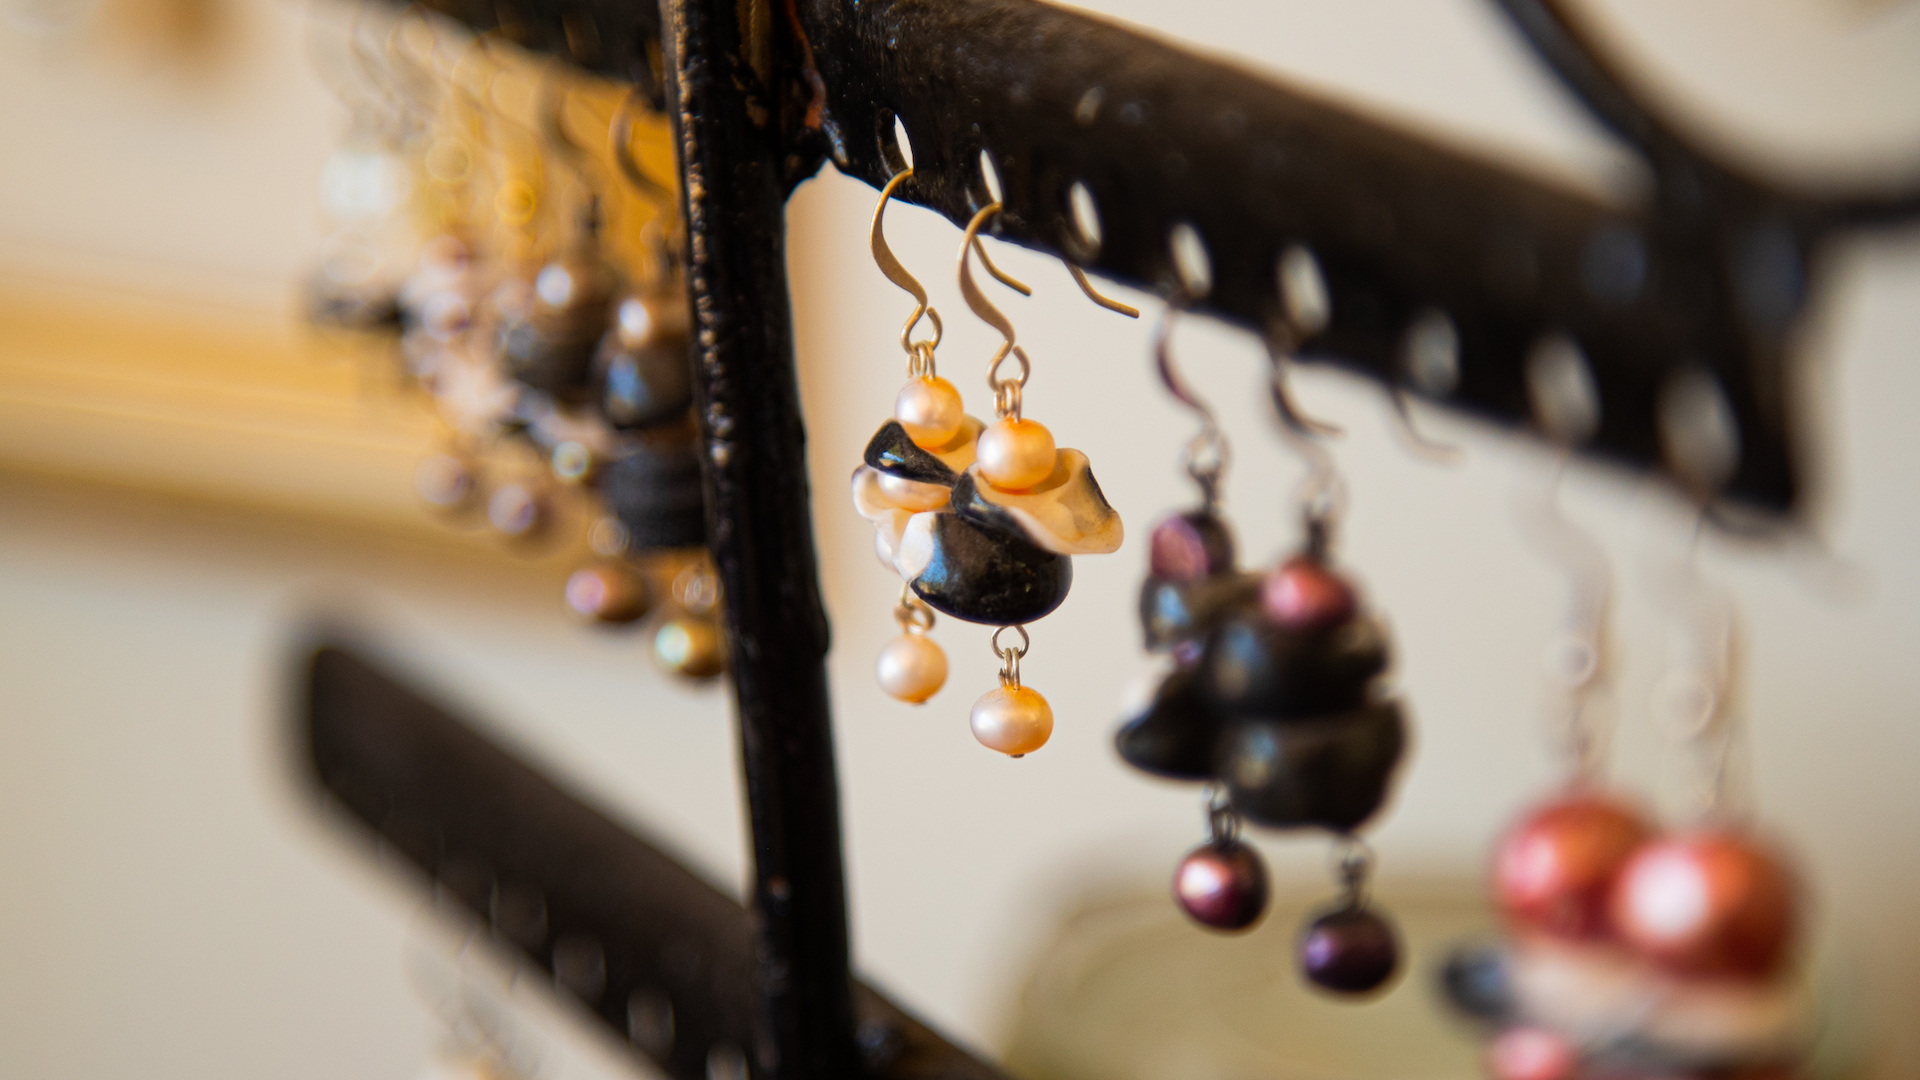 A selection of handcrafted earrings hooked on a black jewellery stand.